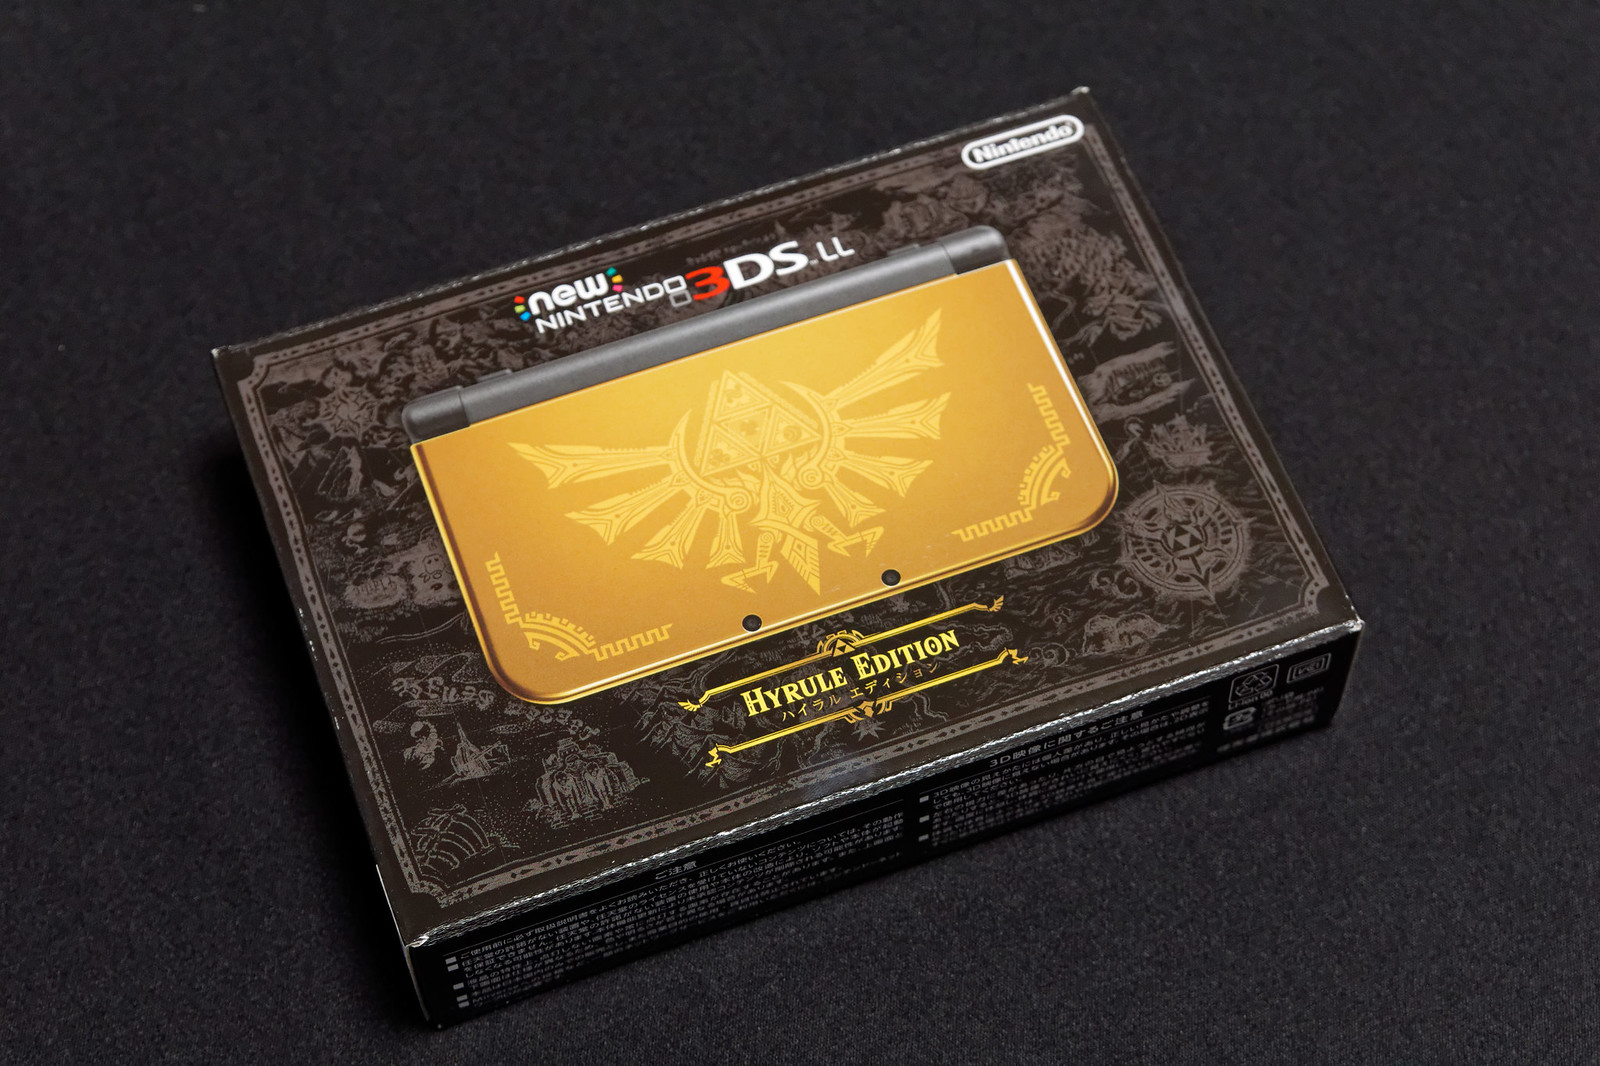 New Nintendo 3DS LL HYRULE EDITION